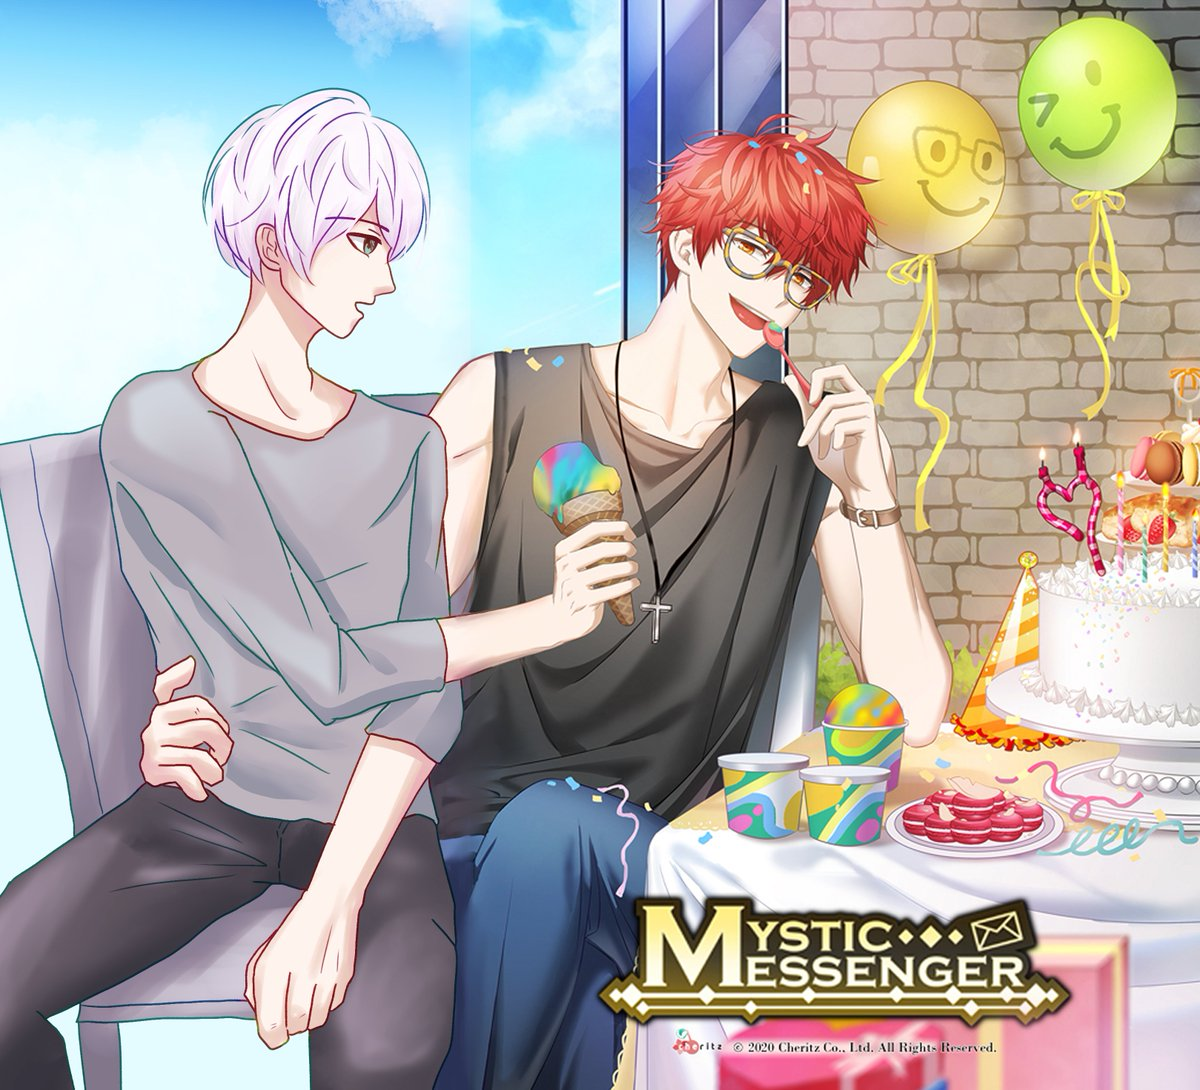 some of my fiends asked for both twins so i did #mysticmessenger #mysme #saeranchoi #saeyoungchoi #mysmeeditpic.twitter.com/wMWDI9YG4T